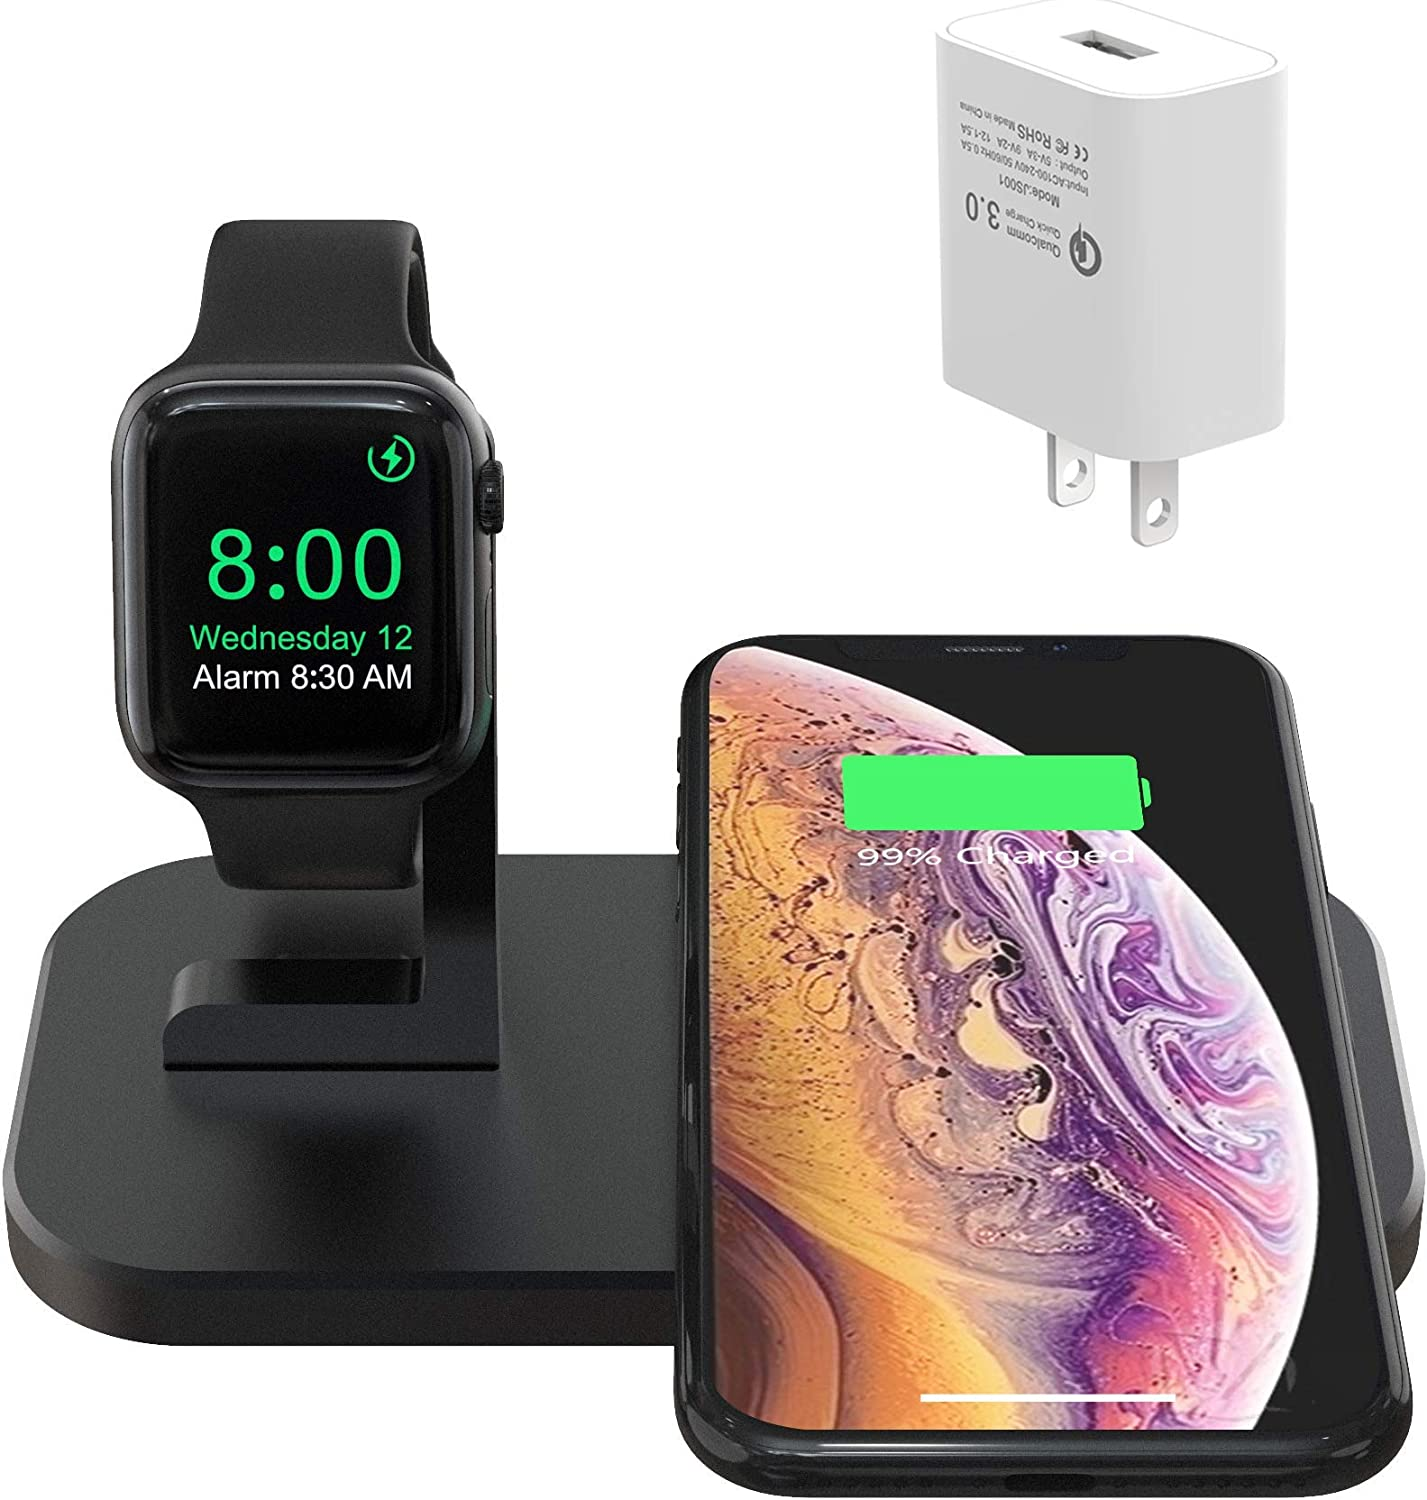 BNCHI 2 in 1 Aluminum Alloy iPhone iwatch Wireless Charging Station Compatible iPhone 11/11 PRO/X/XR/XS/XS MAX/8 Plus/8 and Watch 5/4/3/2/1(with QC3.0 Adapter,No iWatch Cable) (Black)